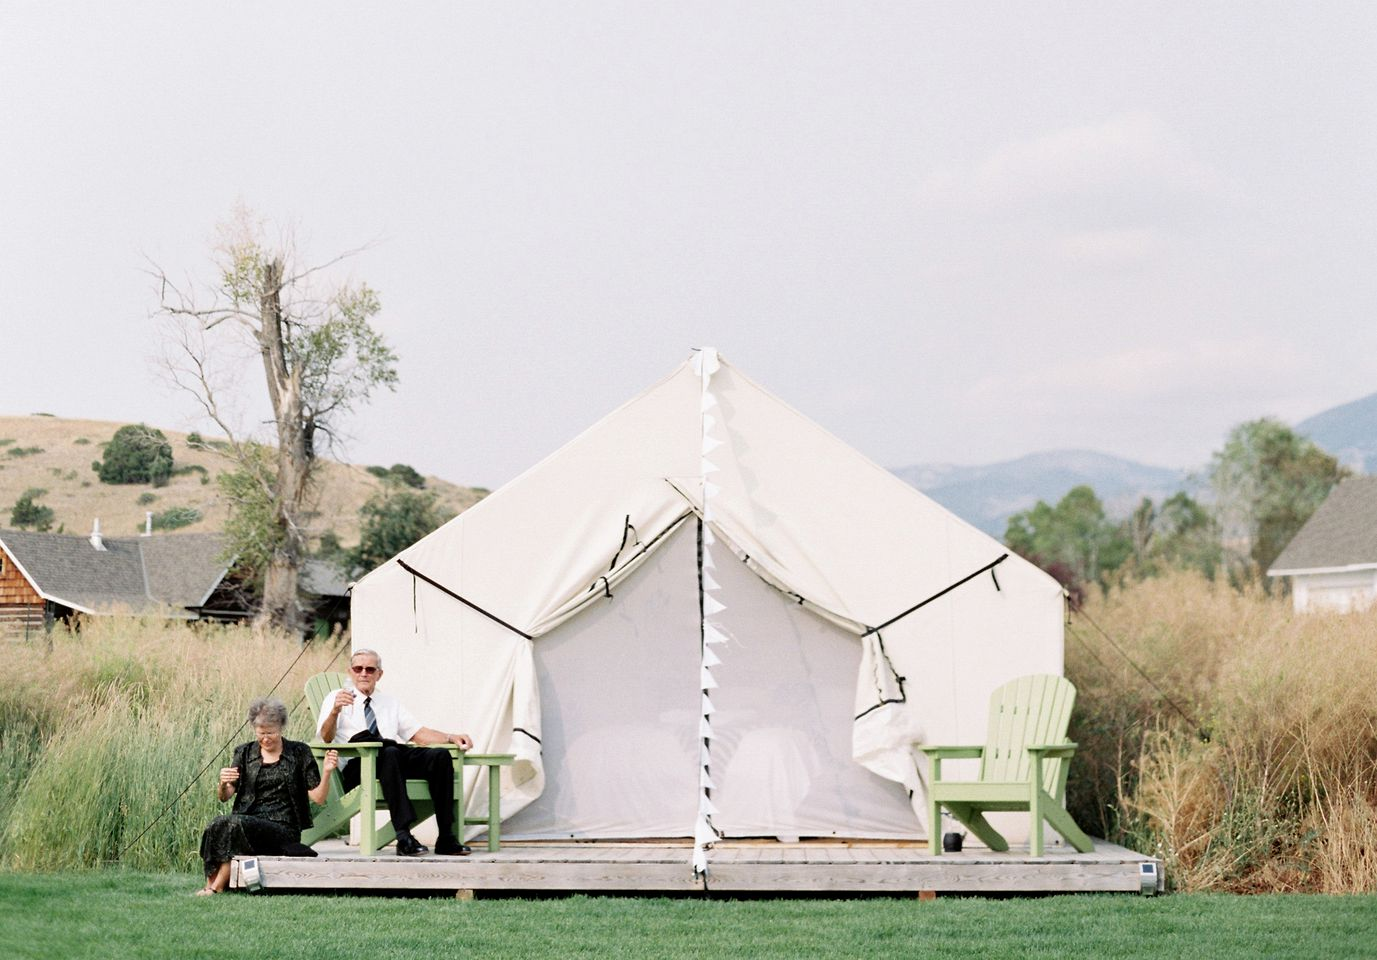 Safari Tents (Belgrade, Montana, United States)